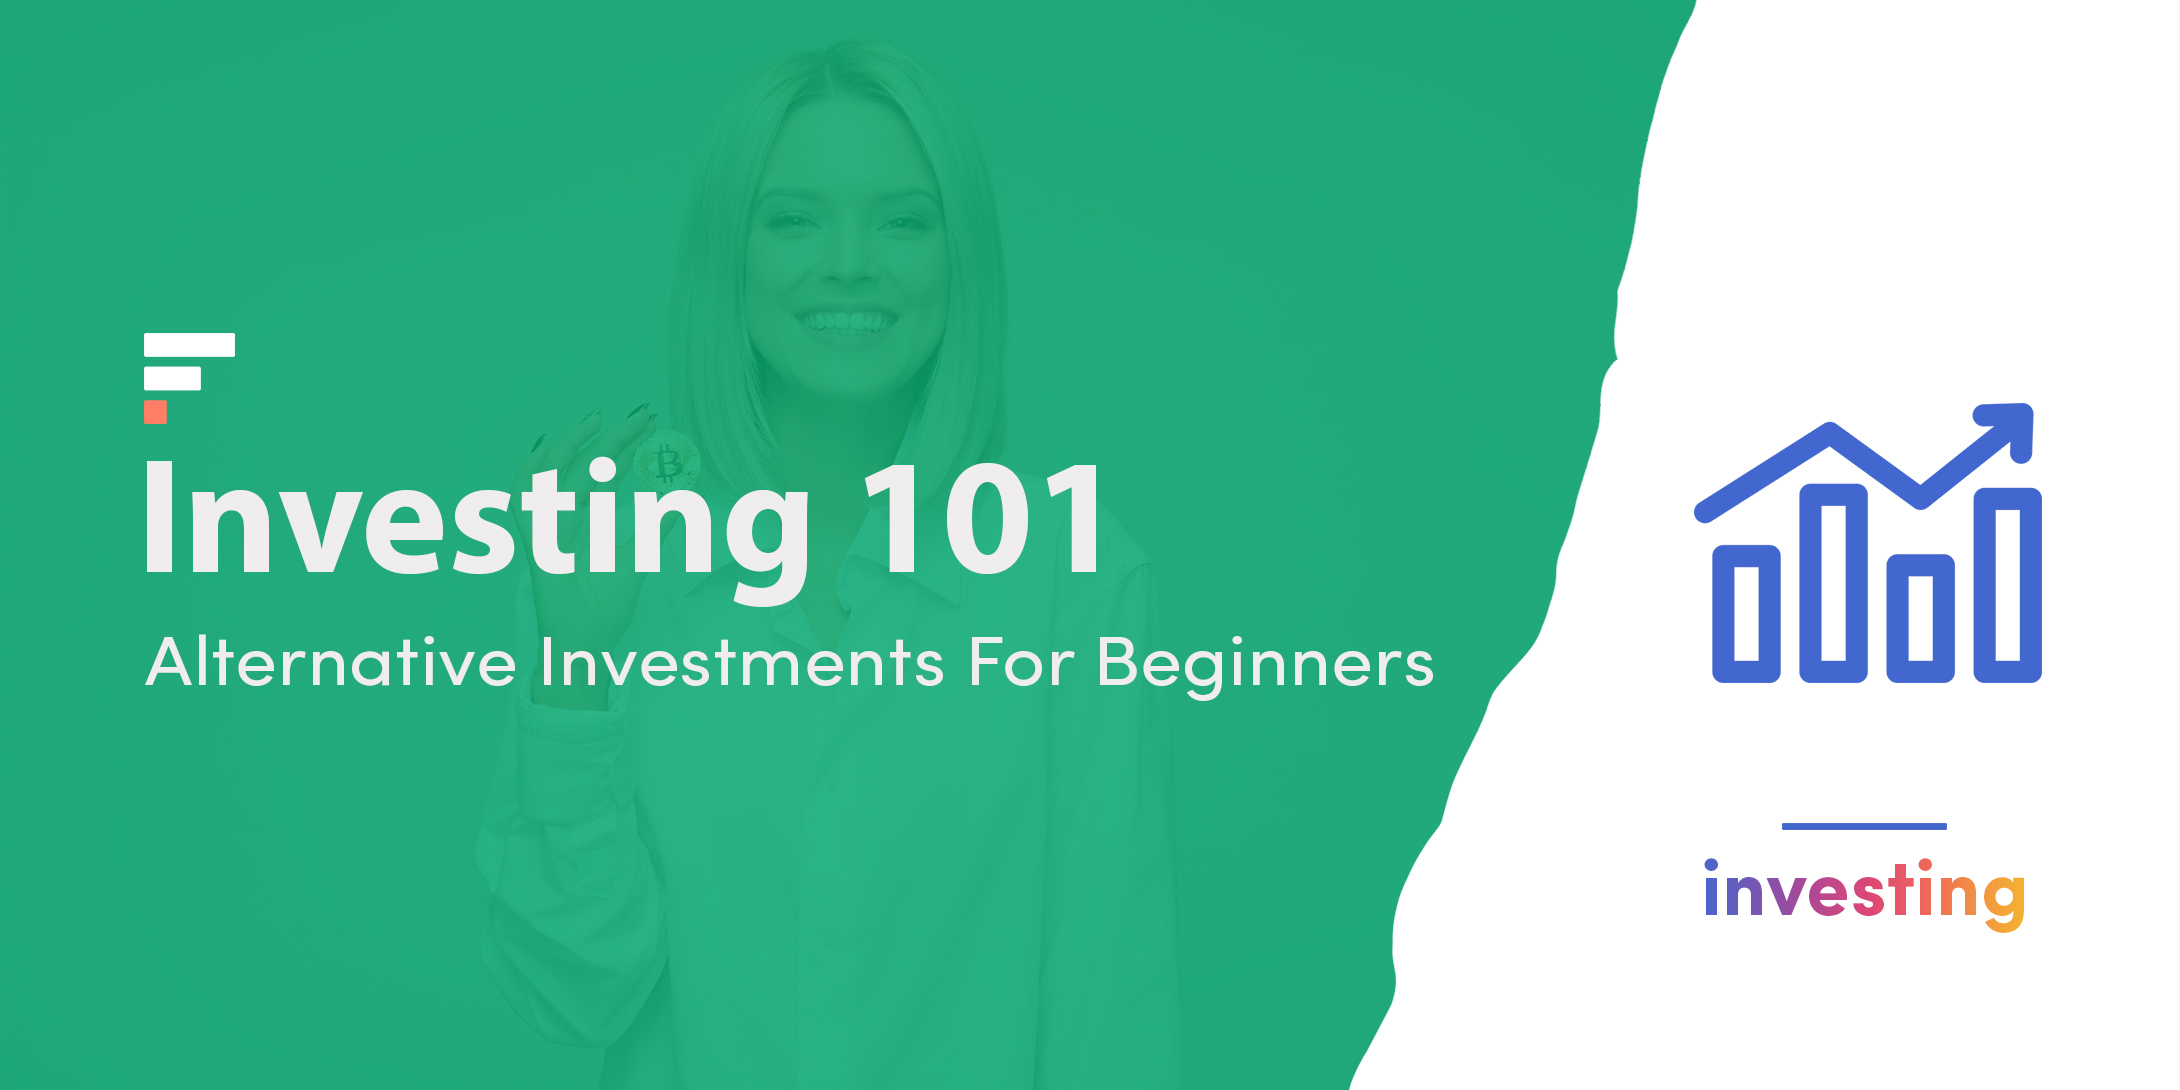 Investing 101: Alternative Investments For Beginners